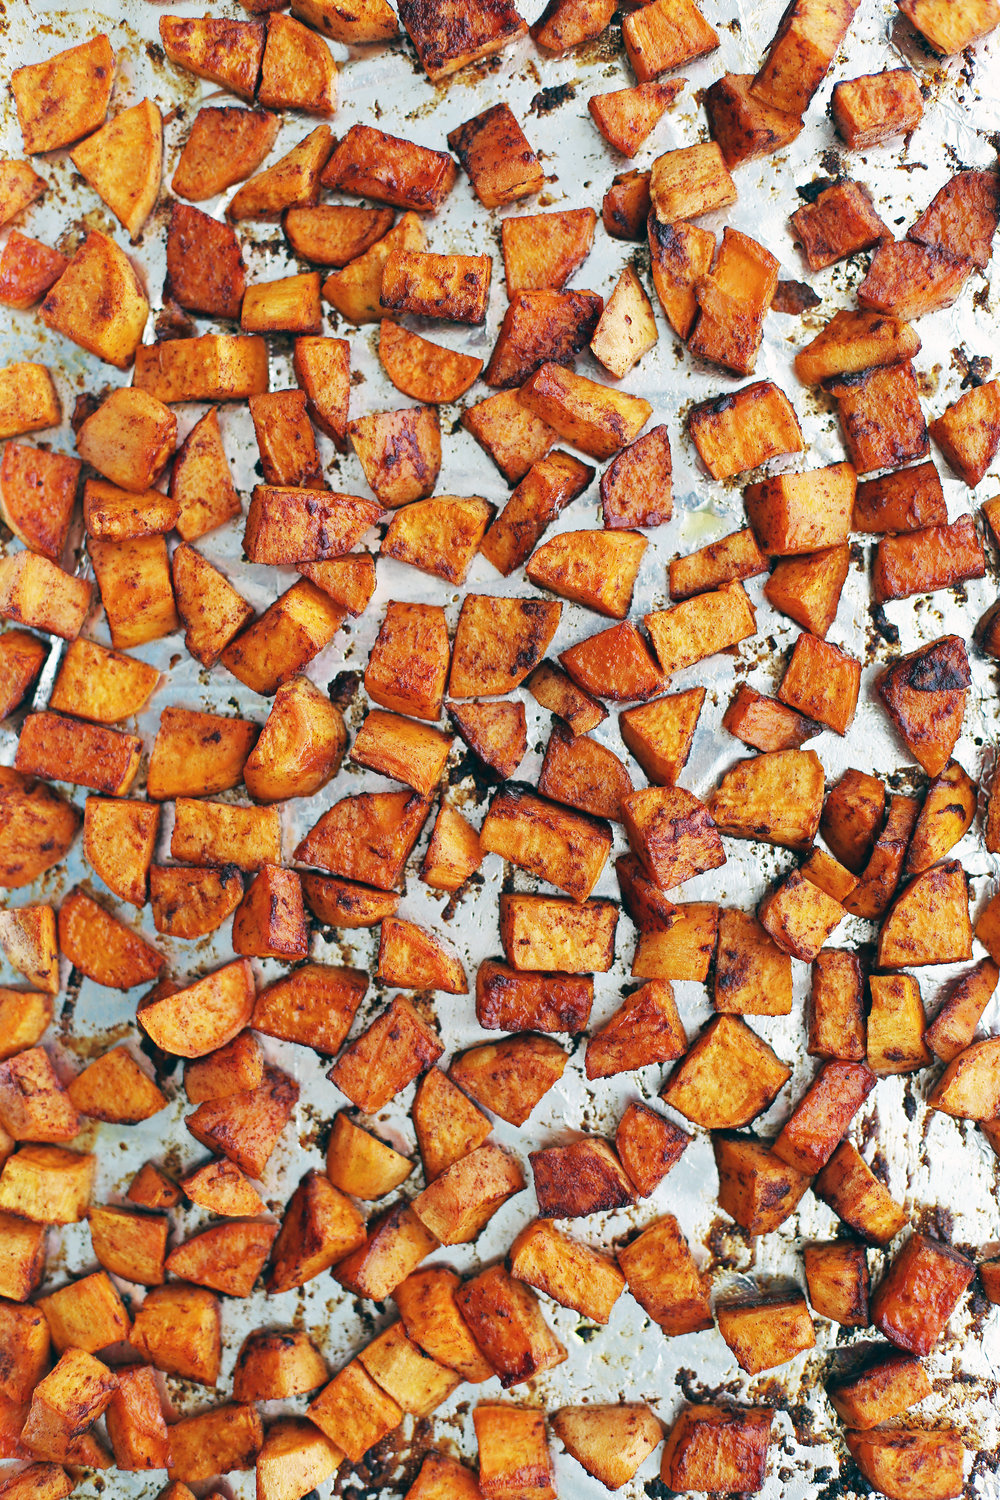 Roasted maple cinnamon sweet potato pieces in a single layer on a baking sheet.